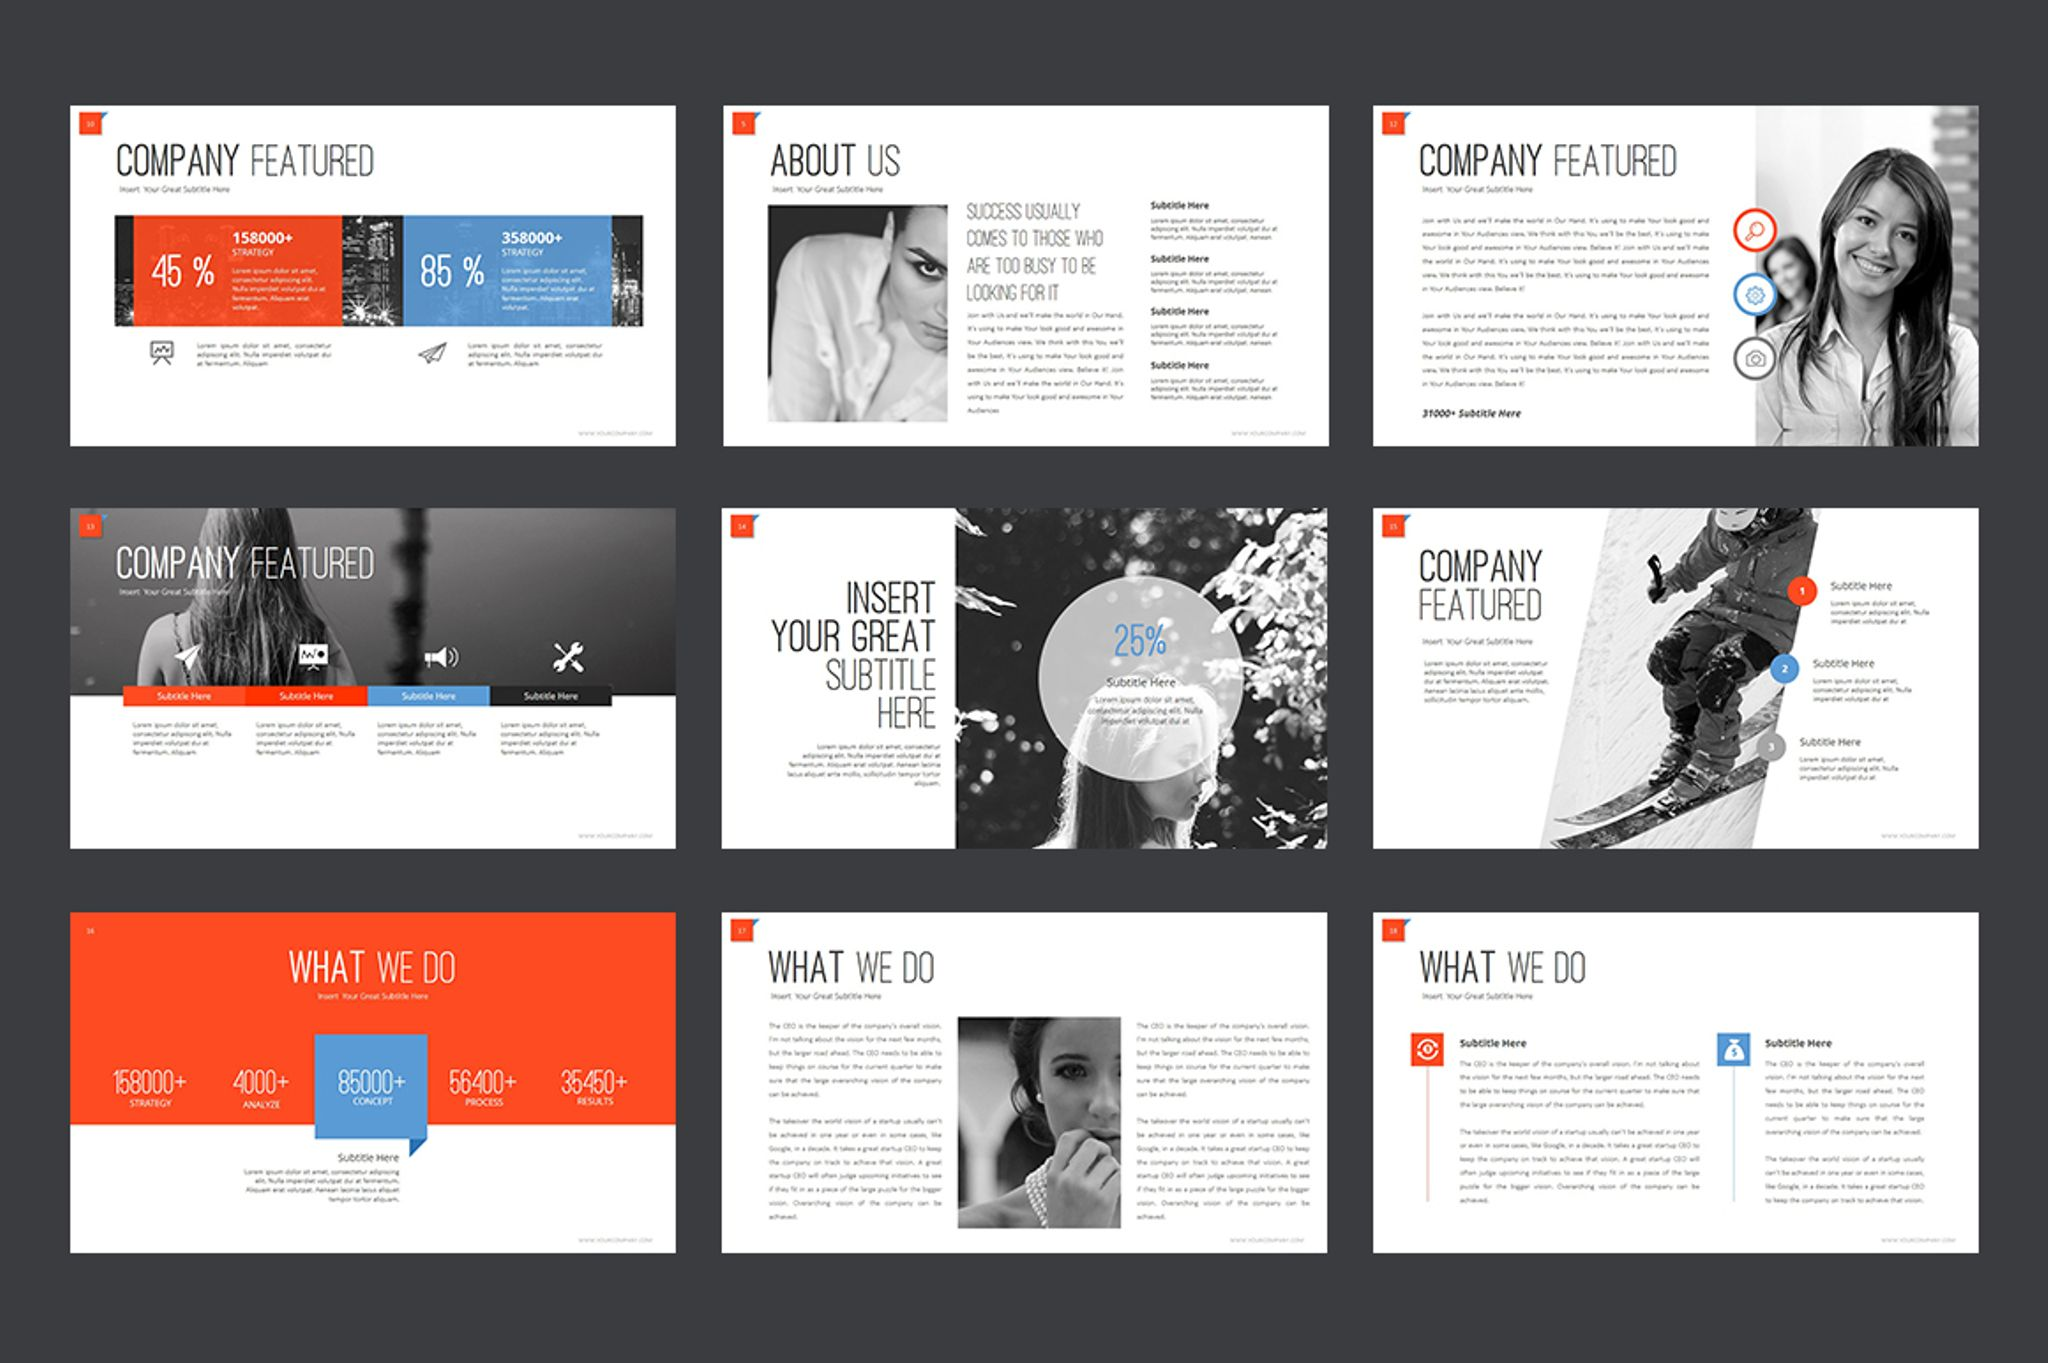 Marketing Agency PowerPoint Template #64617